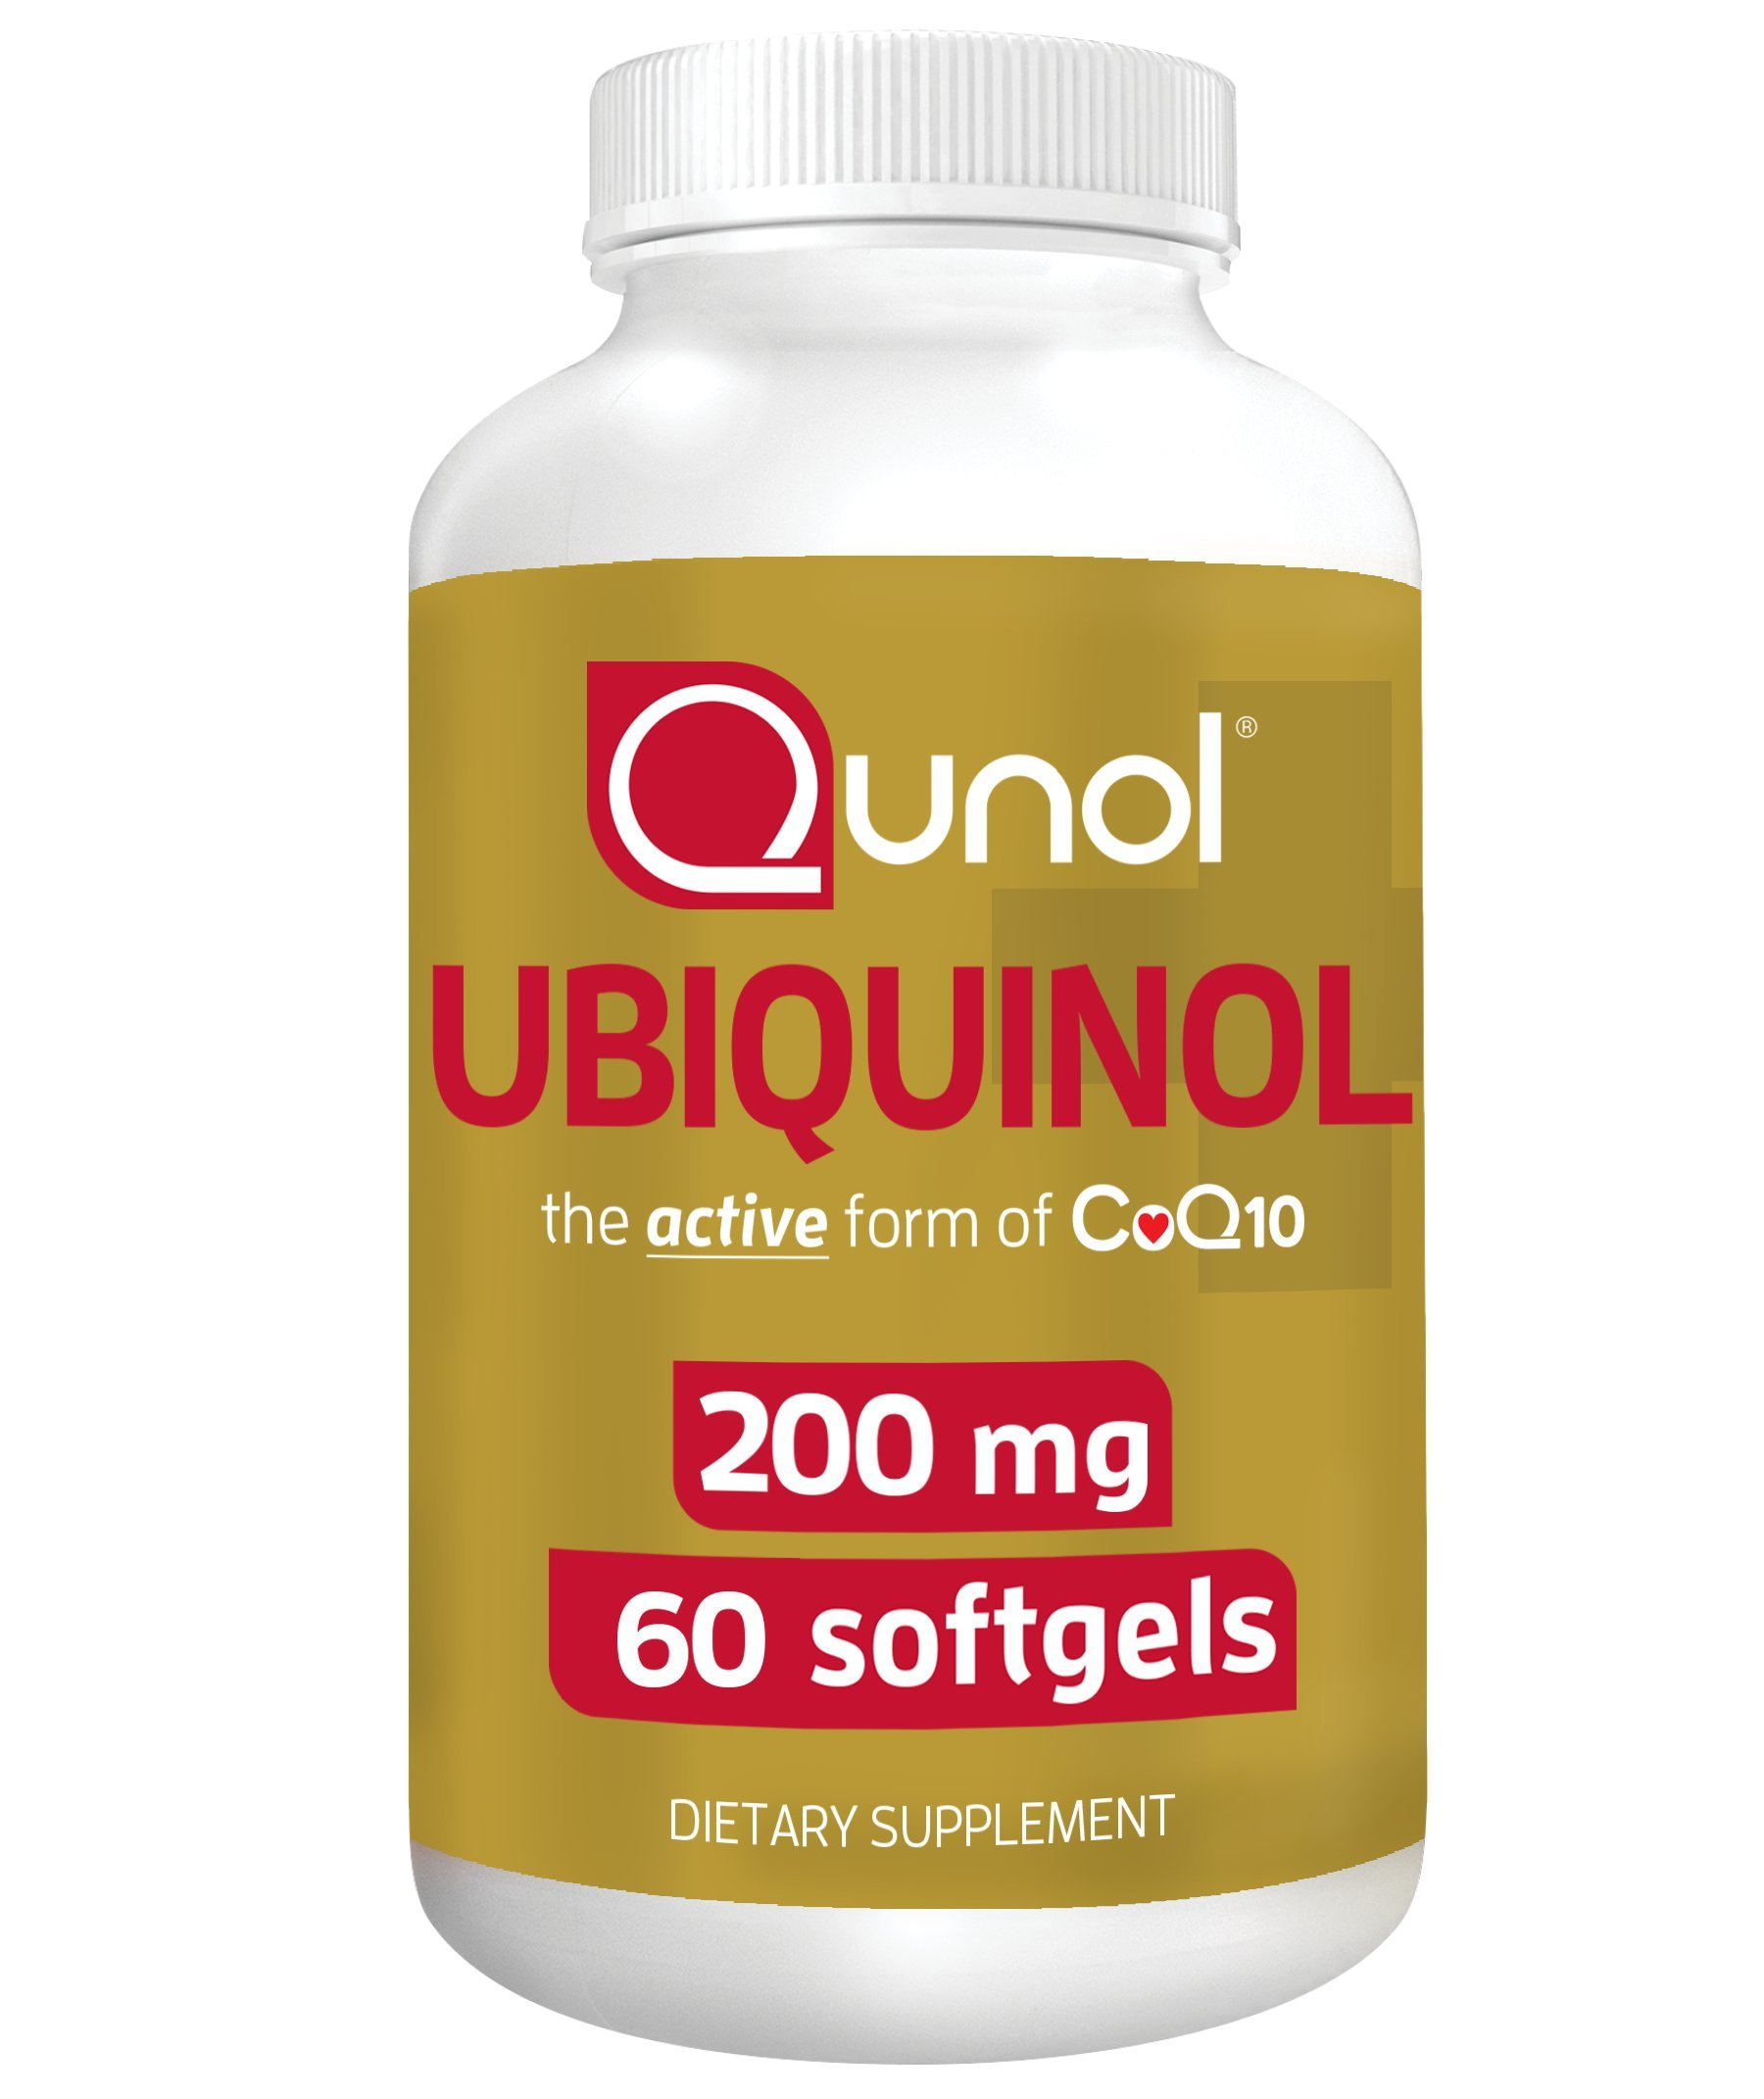 Qunol Ubiquinol 200mg, Powerful Antioxidant for Heart and Vascular Health, Essential for energy production, Natural Supplement Active Form of CoQ10, 60 Count